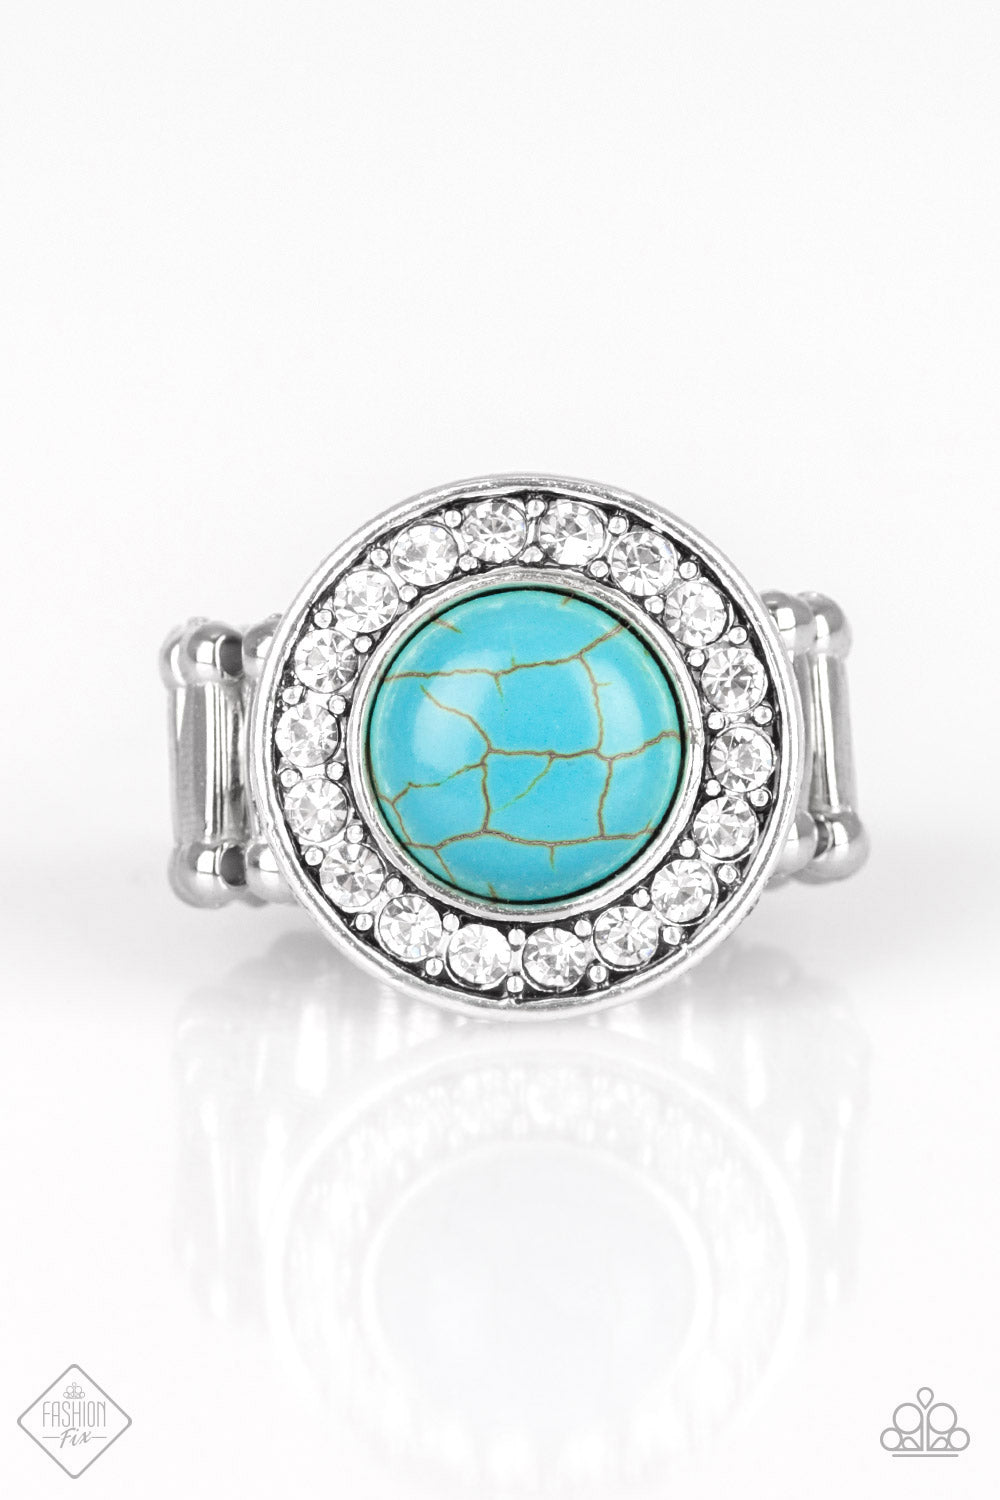 Rugged Radiance - Turquoise Ring - The Paparazzi Fox